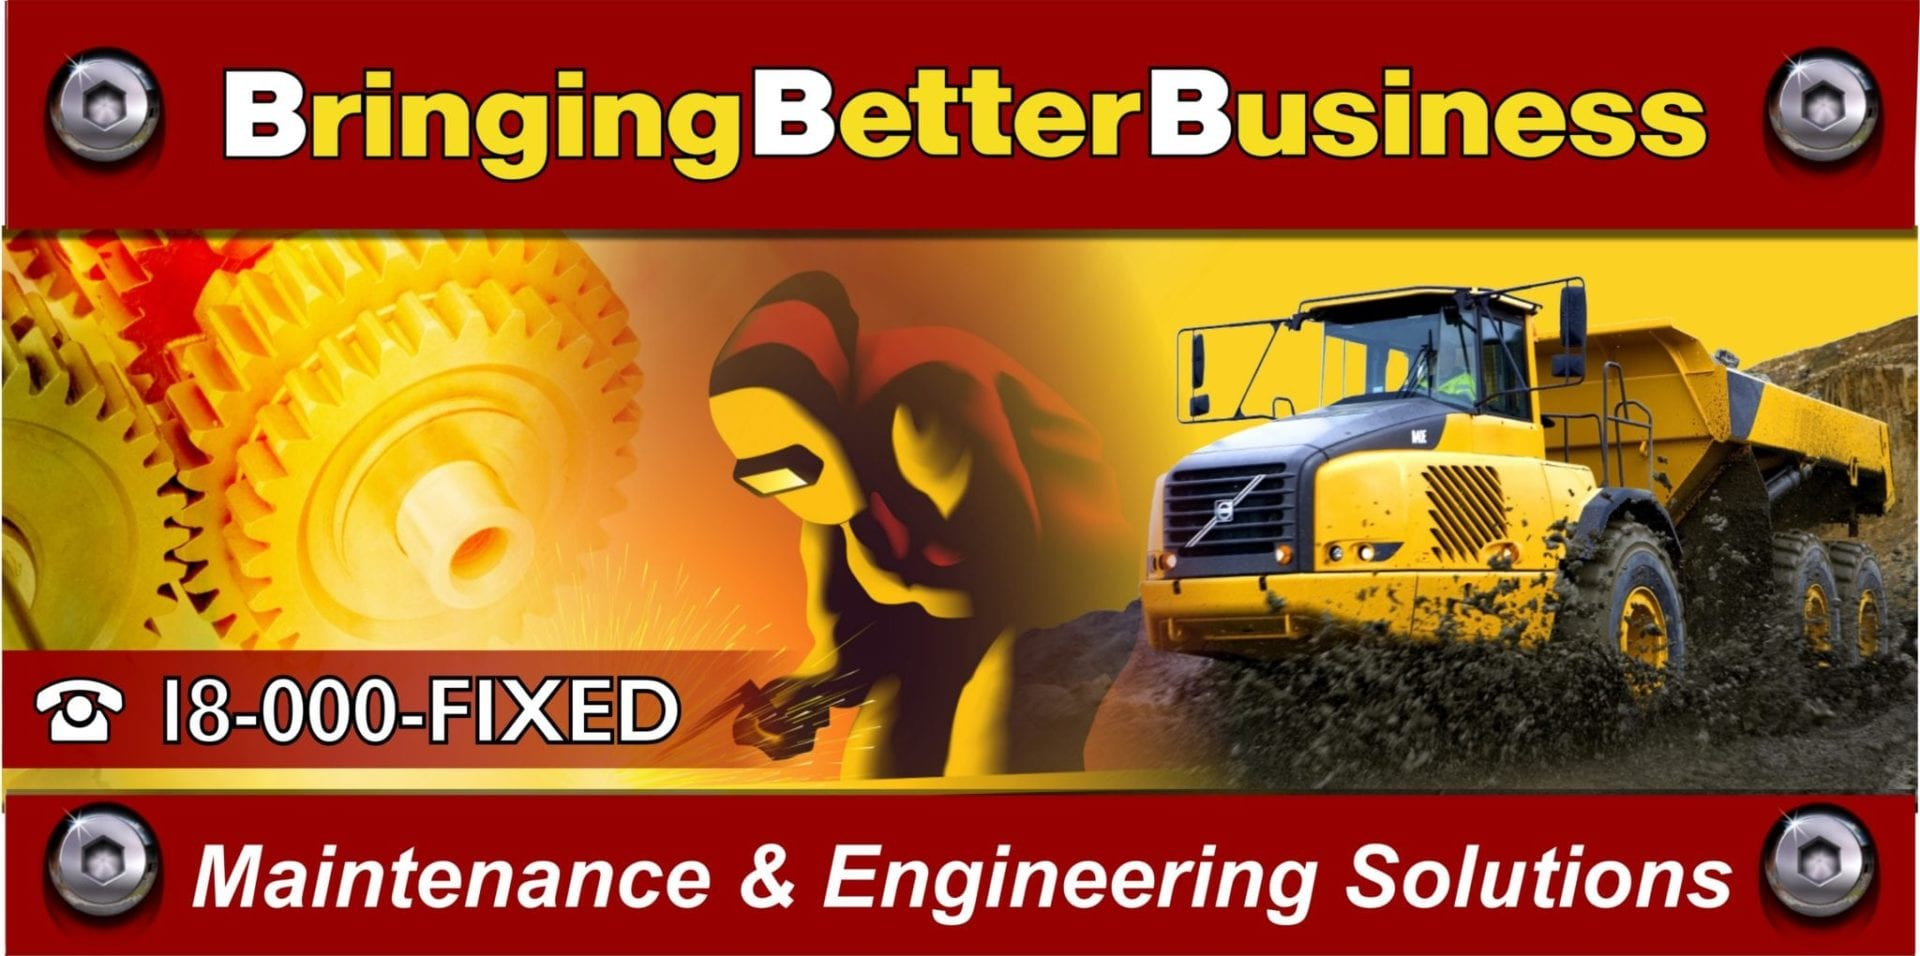 Bringing Better Business Pty Ltd